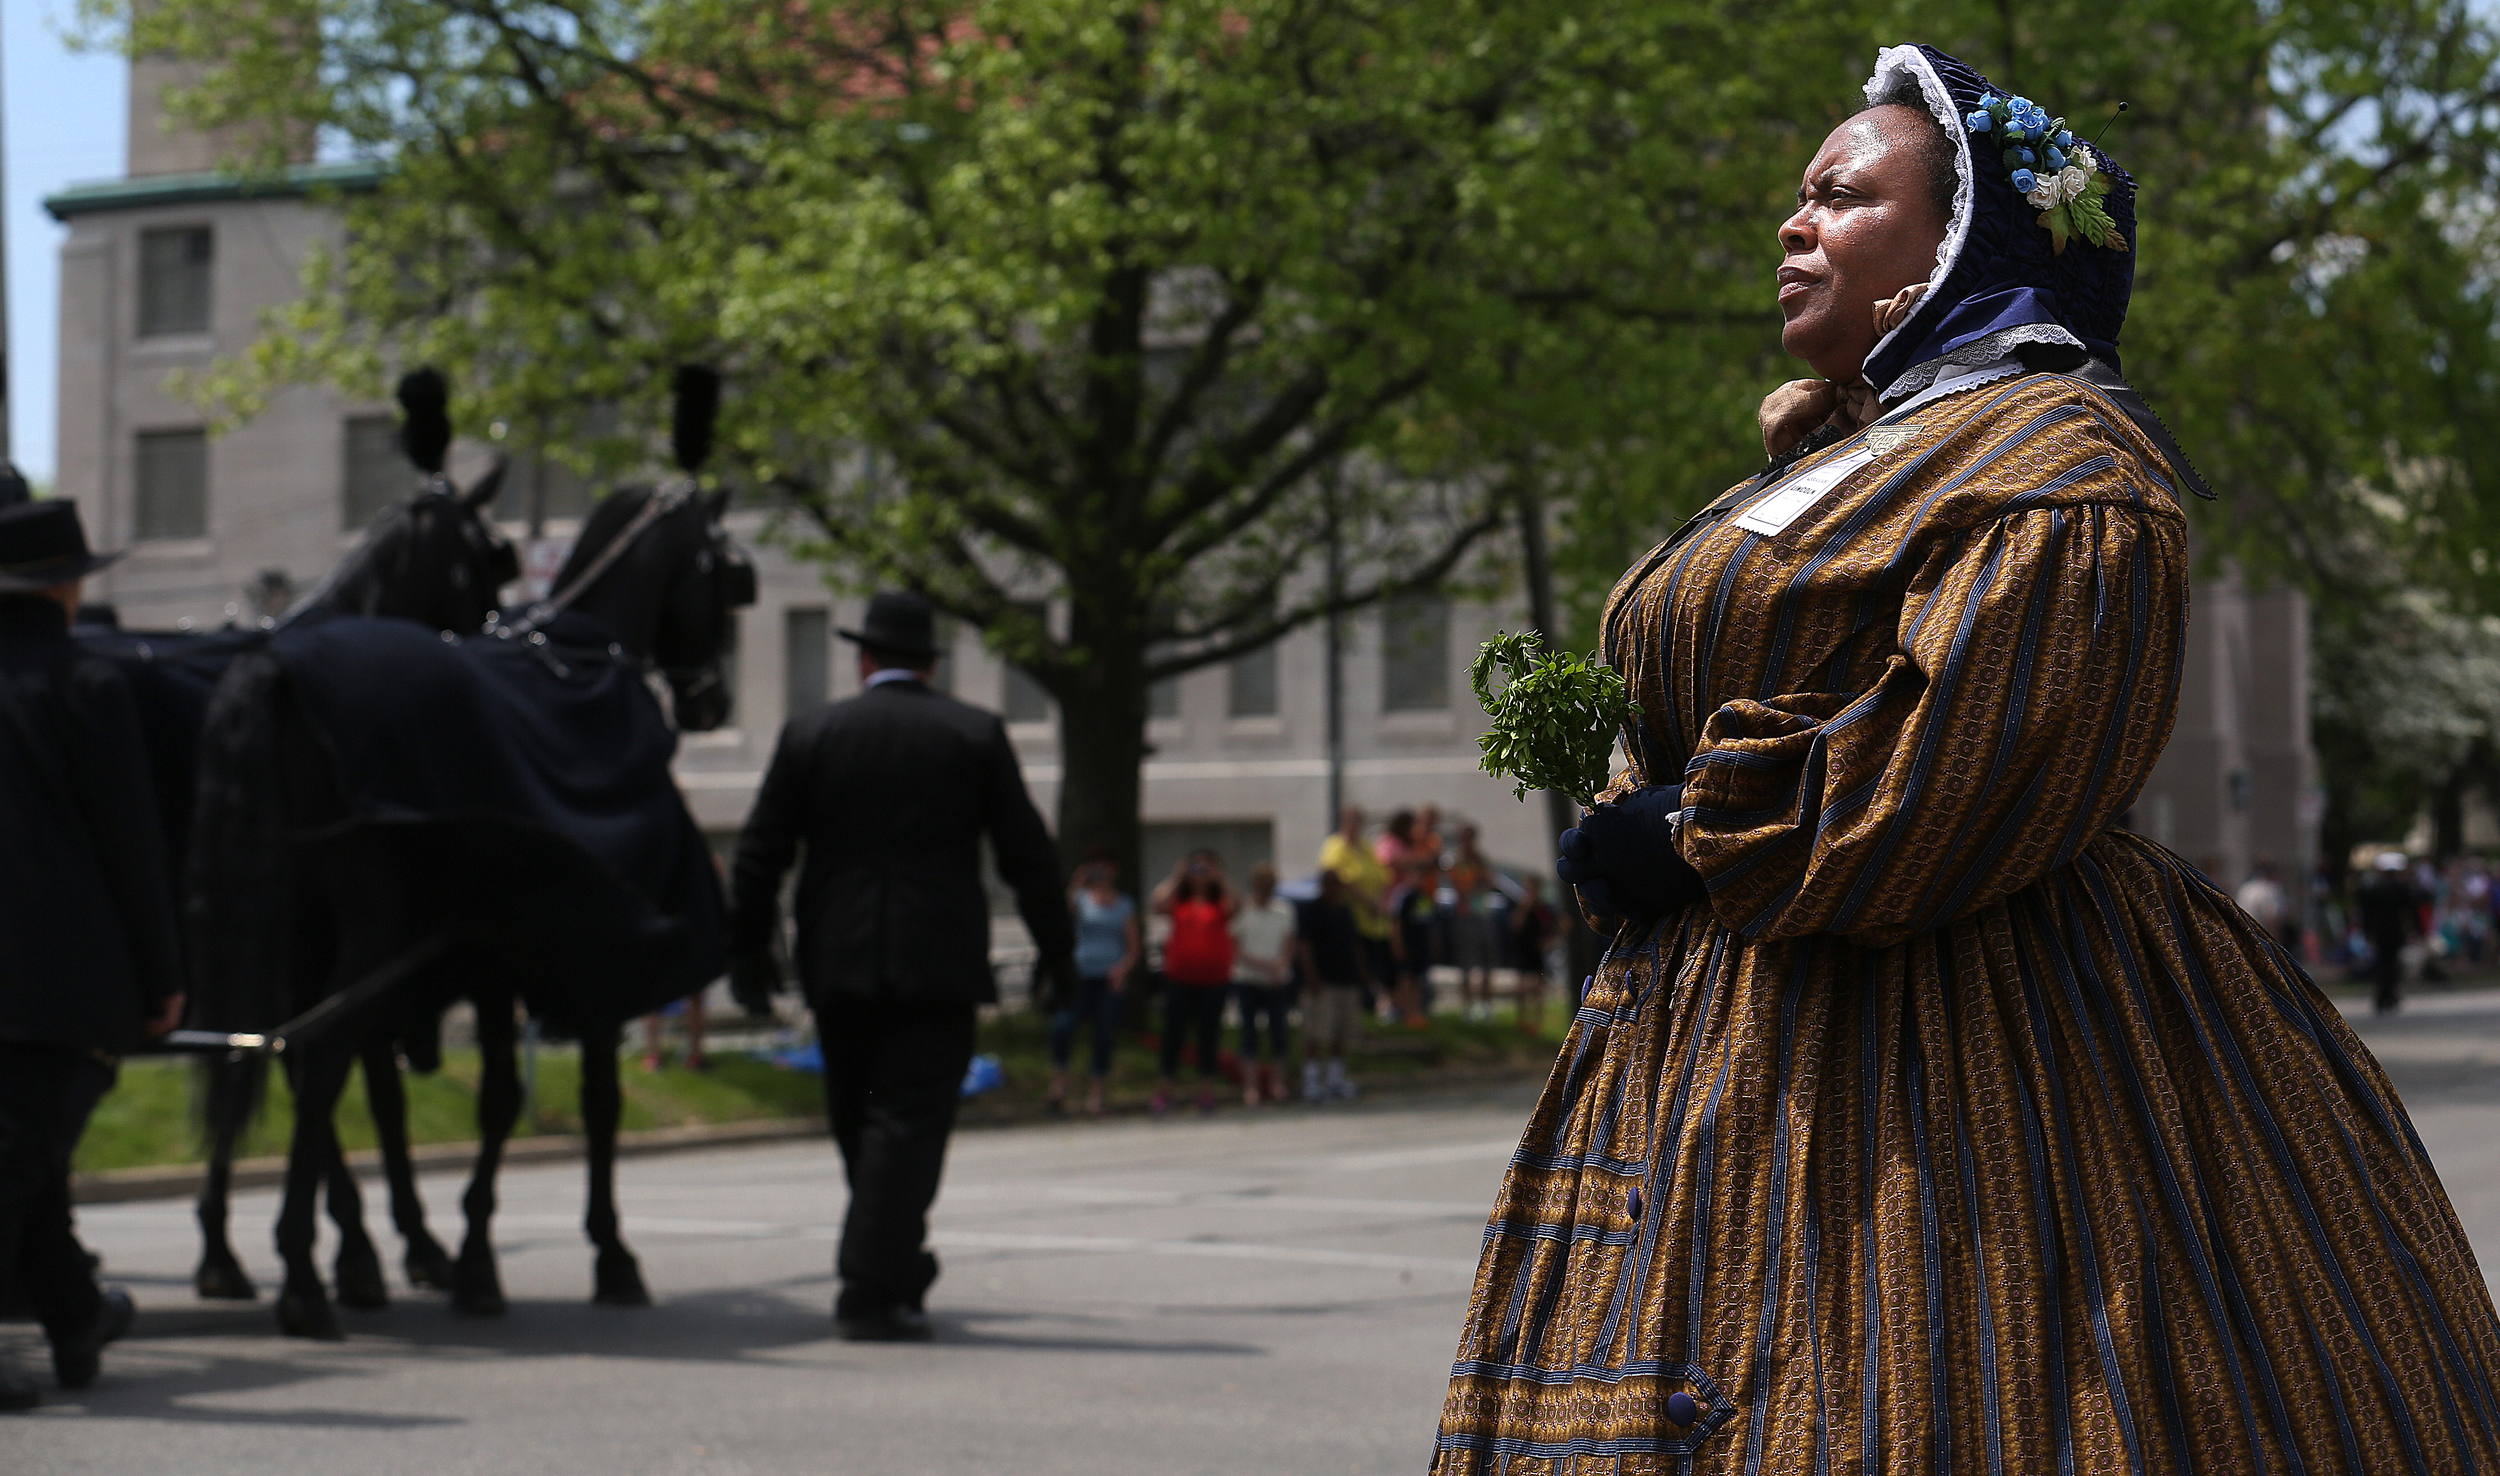 Reenactor Yulanda Burgess of Detroit, Mich.,watches as the Lincoln hearse travels west on Cook Street. Burgess said her great-great grandfather, Armstead Burgess, was a member of the 6th Regiment, United States Colored Heavy Artillery who took part in the Battle of Fort Pillow. David Spencer/The State Journal-Register